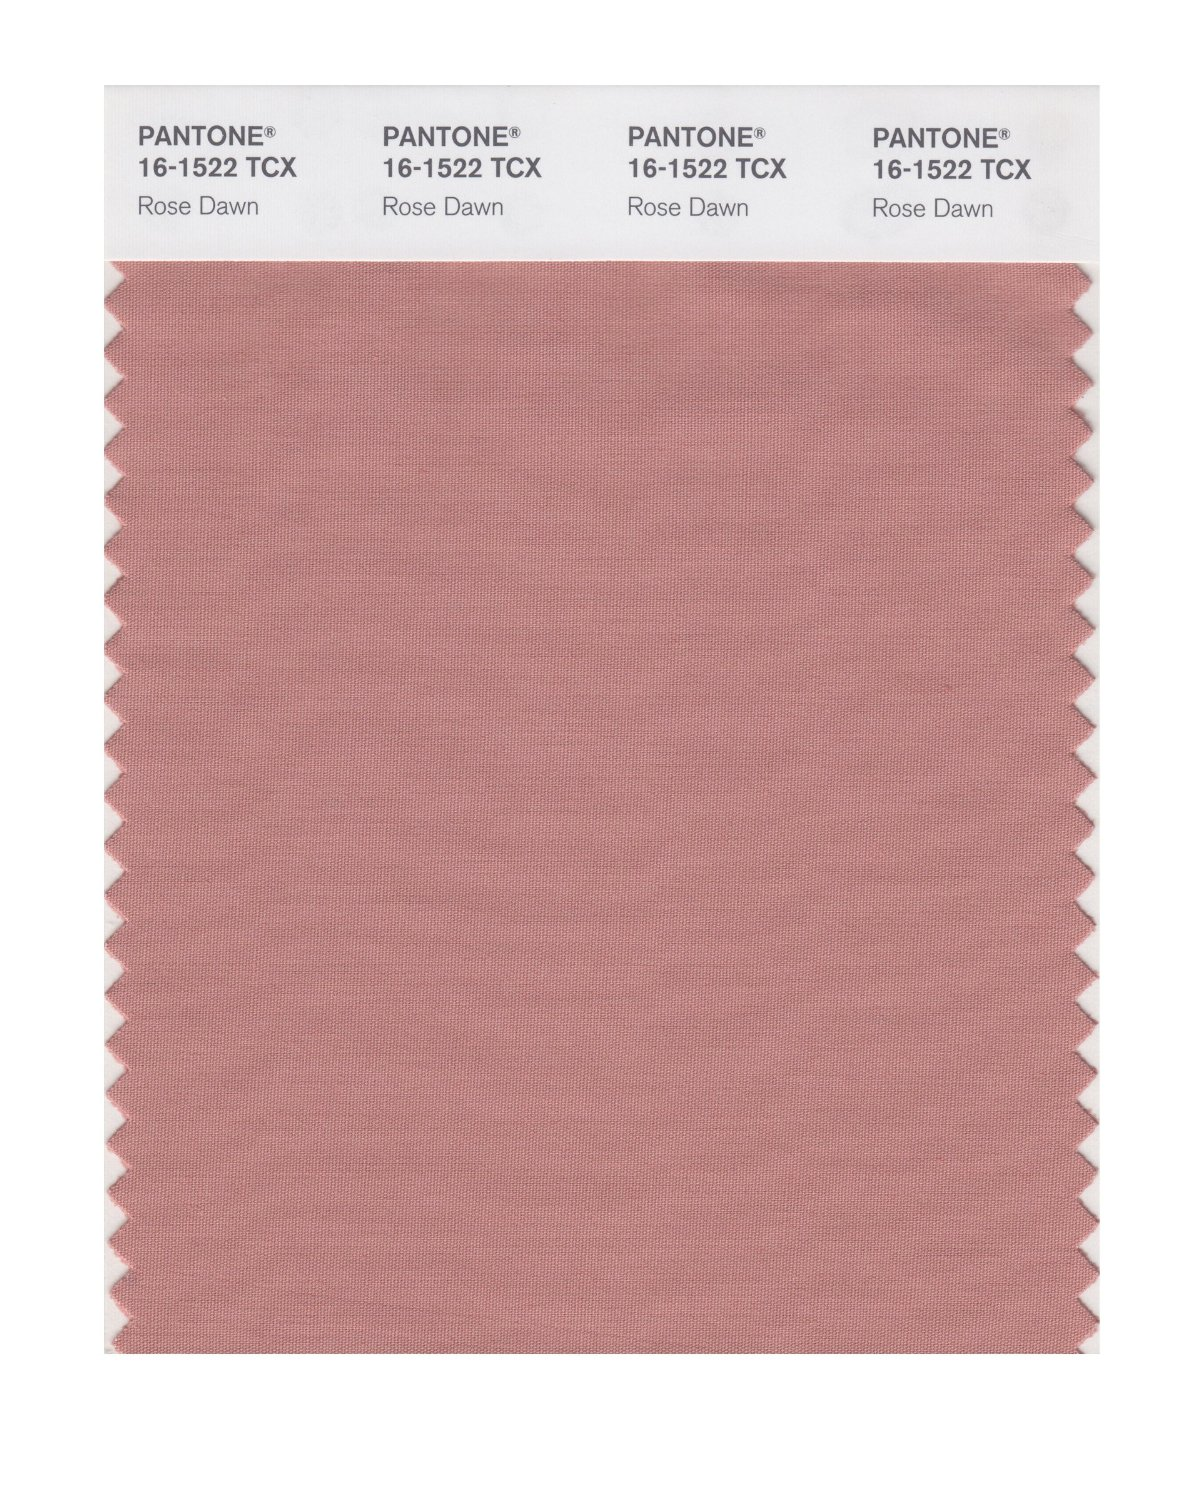 Pantone Smart Swatch 16-1522 Rose Dawn